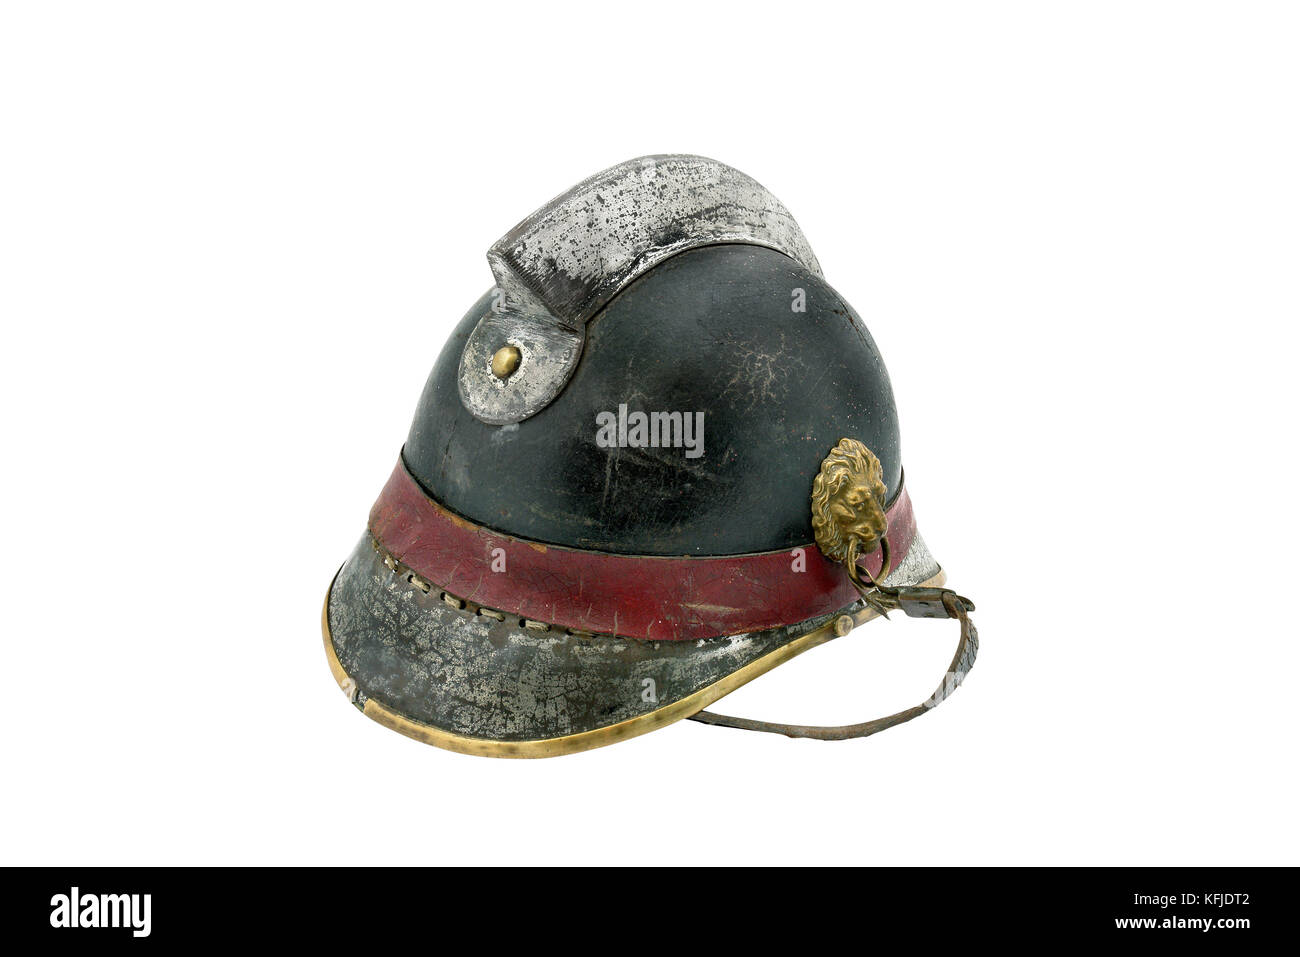 old helmet for fireman isolated on white. The time of the '40s. Czechoslovakia - Stock Image